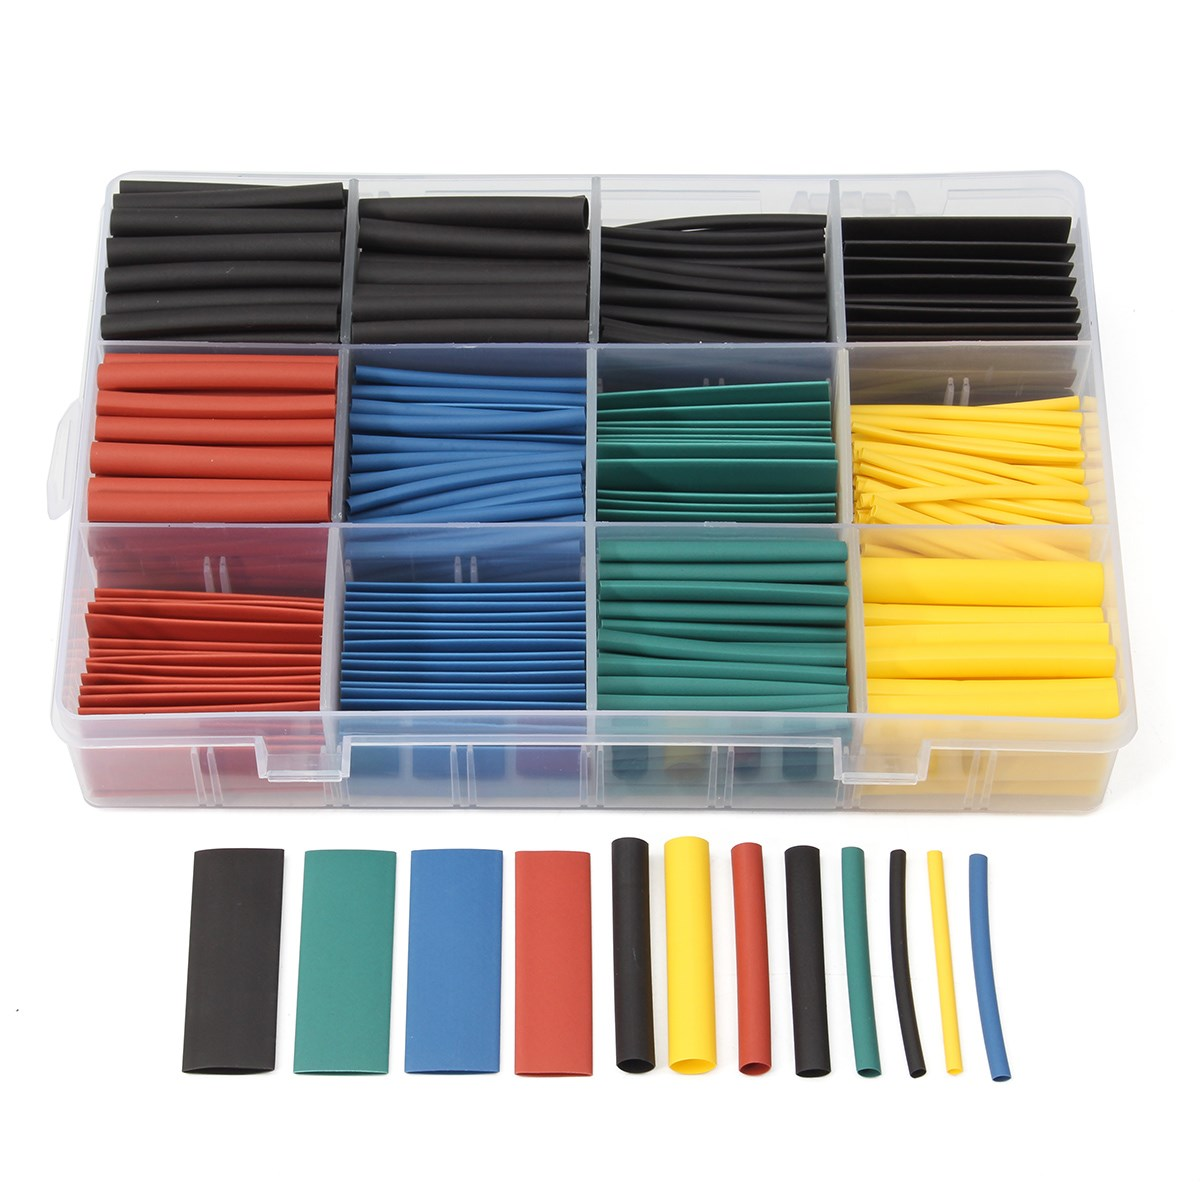 Best buy ) }}530pcs Multi Color Heat Shrink Tubing Insulation Shrinkable Tube Assortment Electronic Polyolefin Ratio 2:1